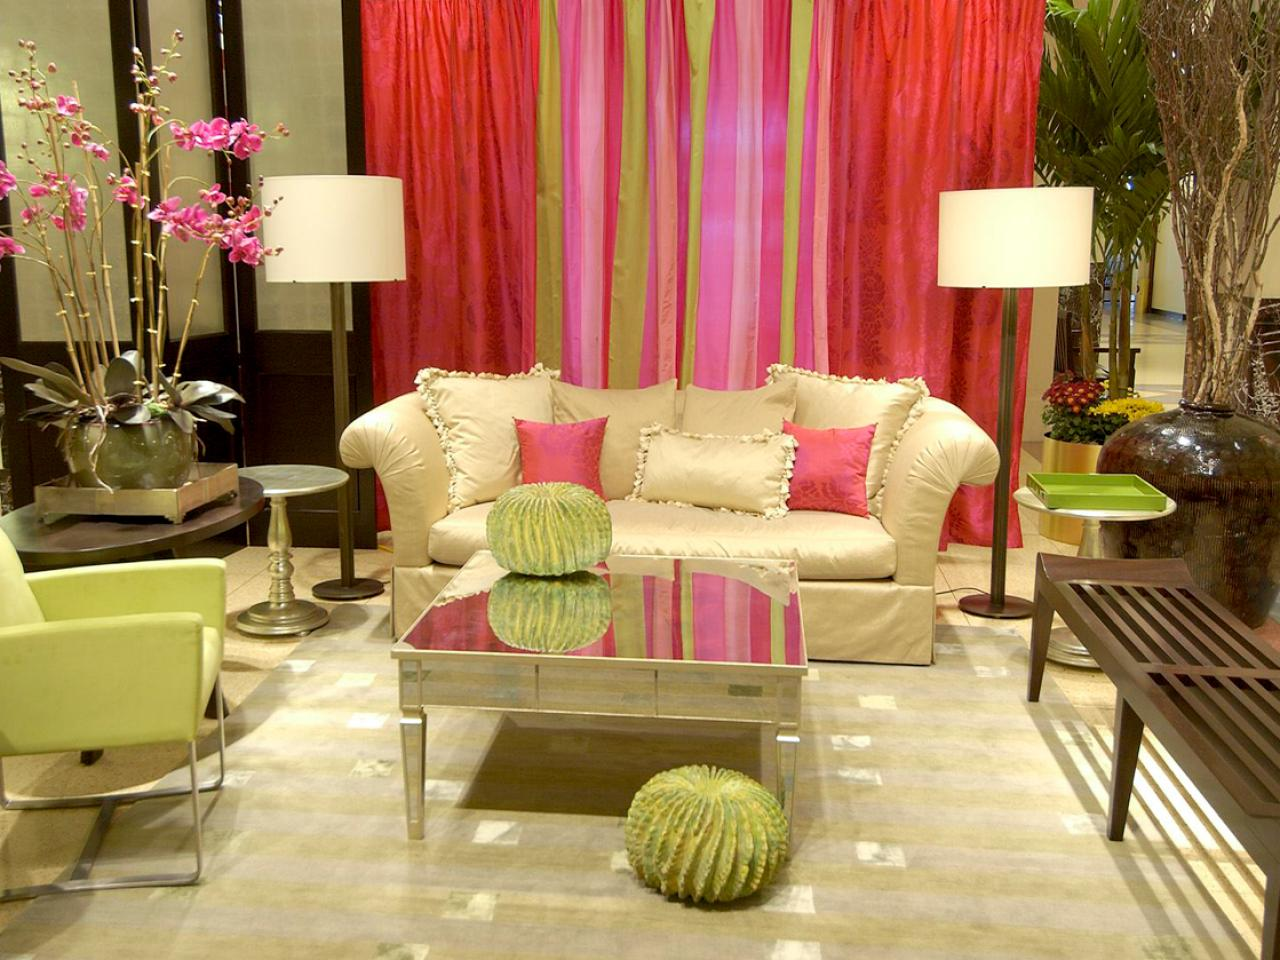 Include Dramatic Drapes! Home Decor